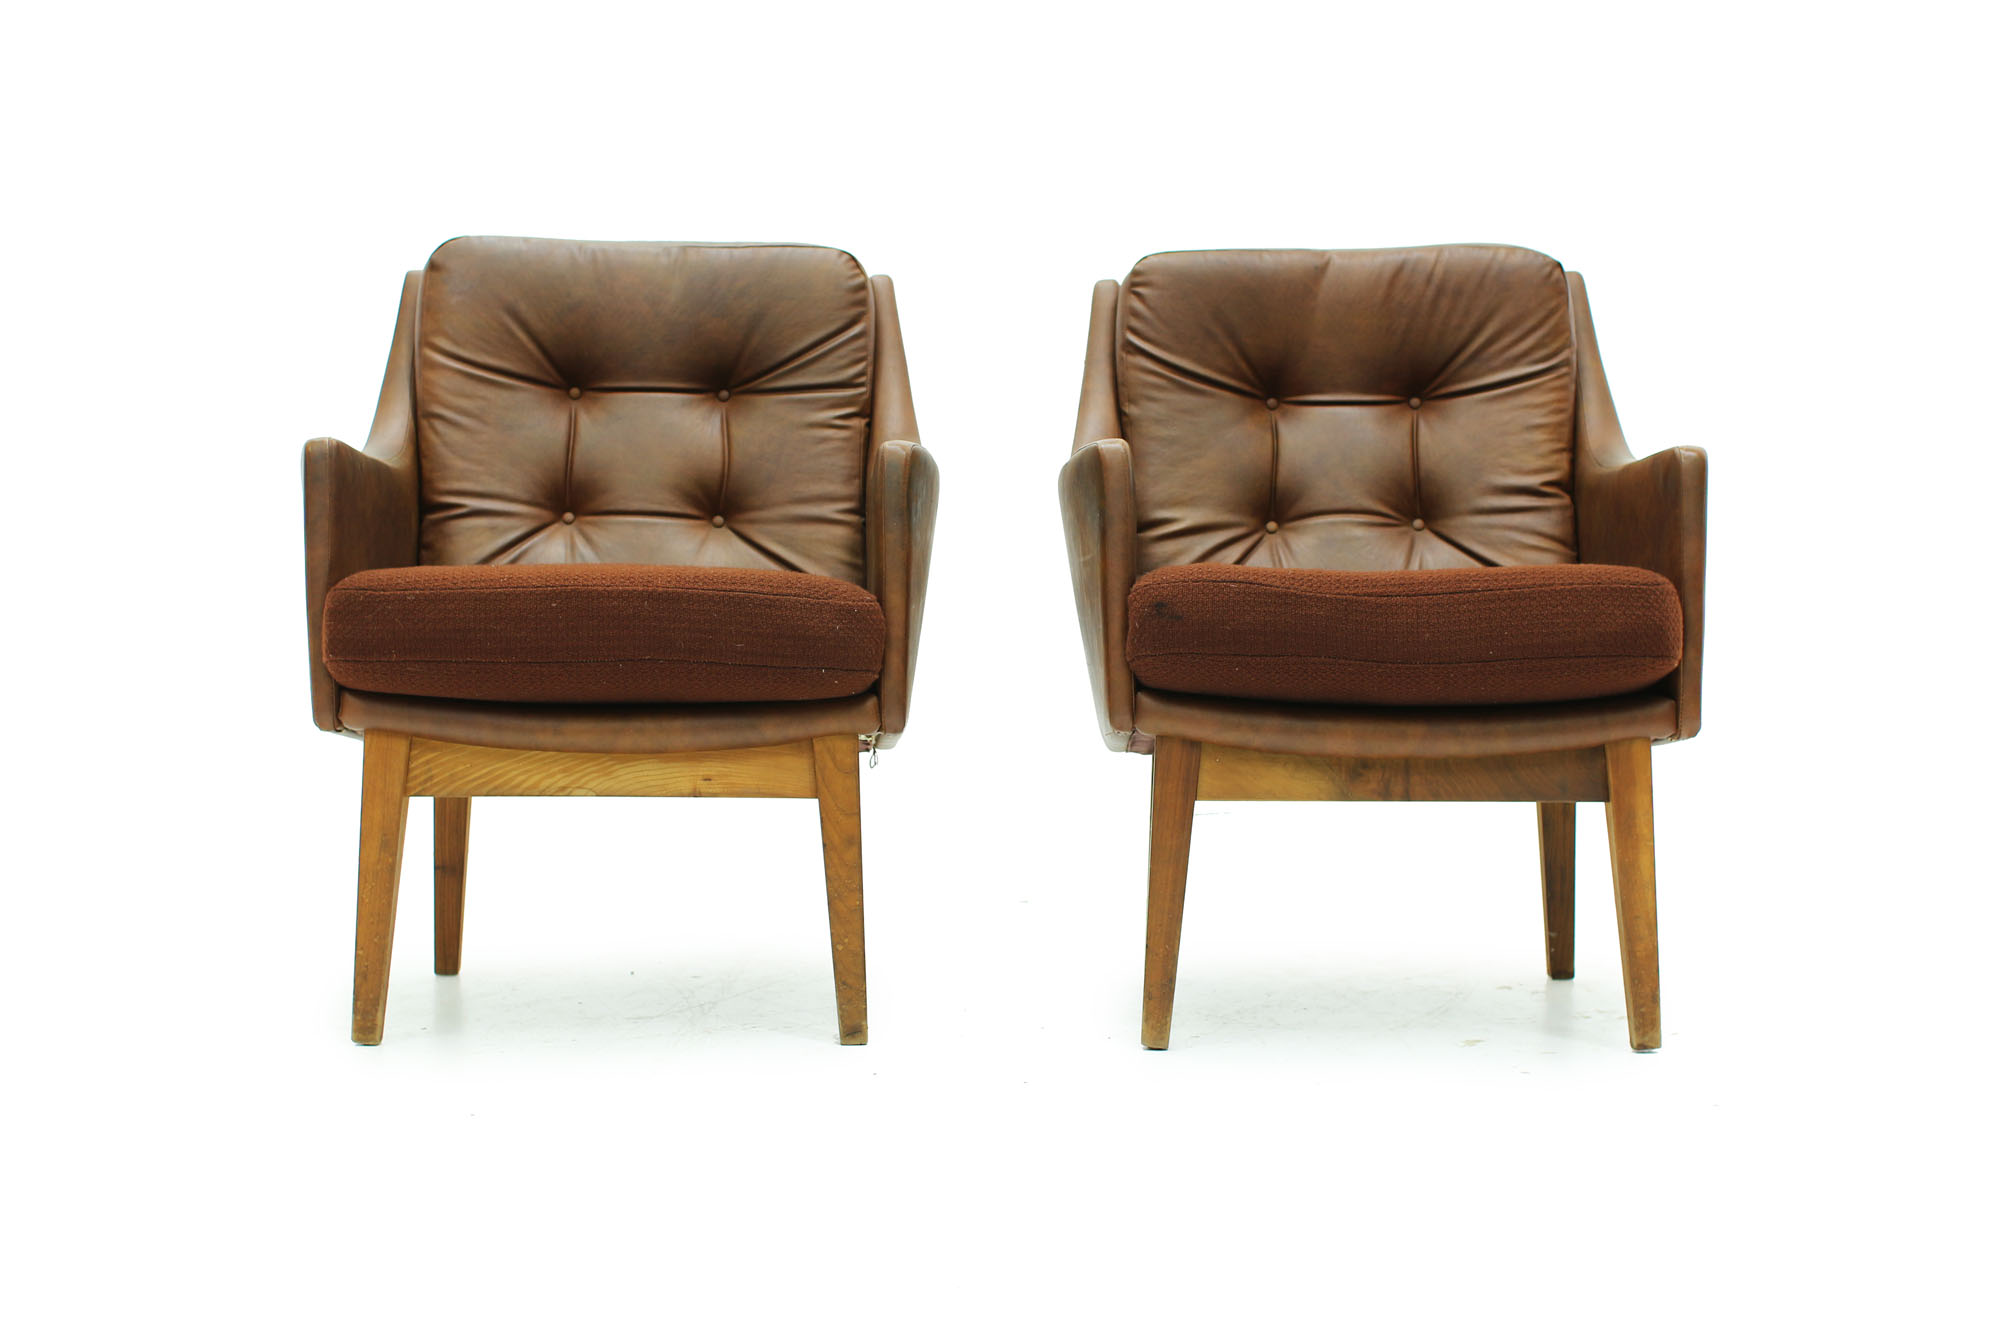 Set of tufted lounge chairs with original brown leatherette from the 60s (4).jpg